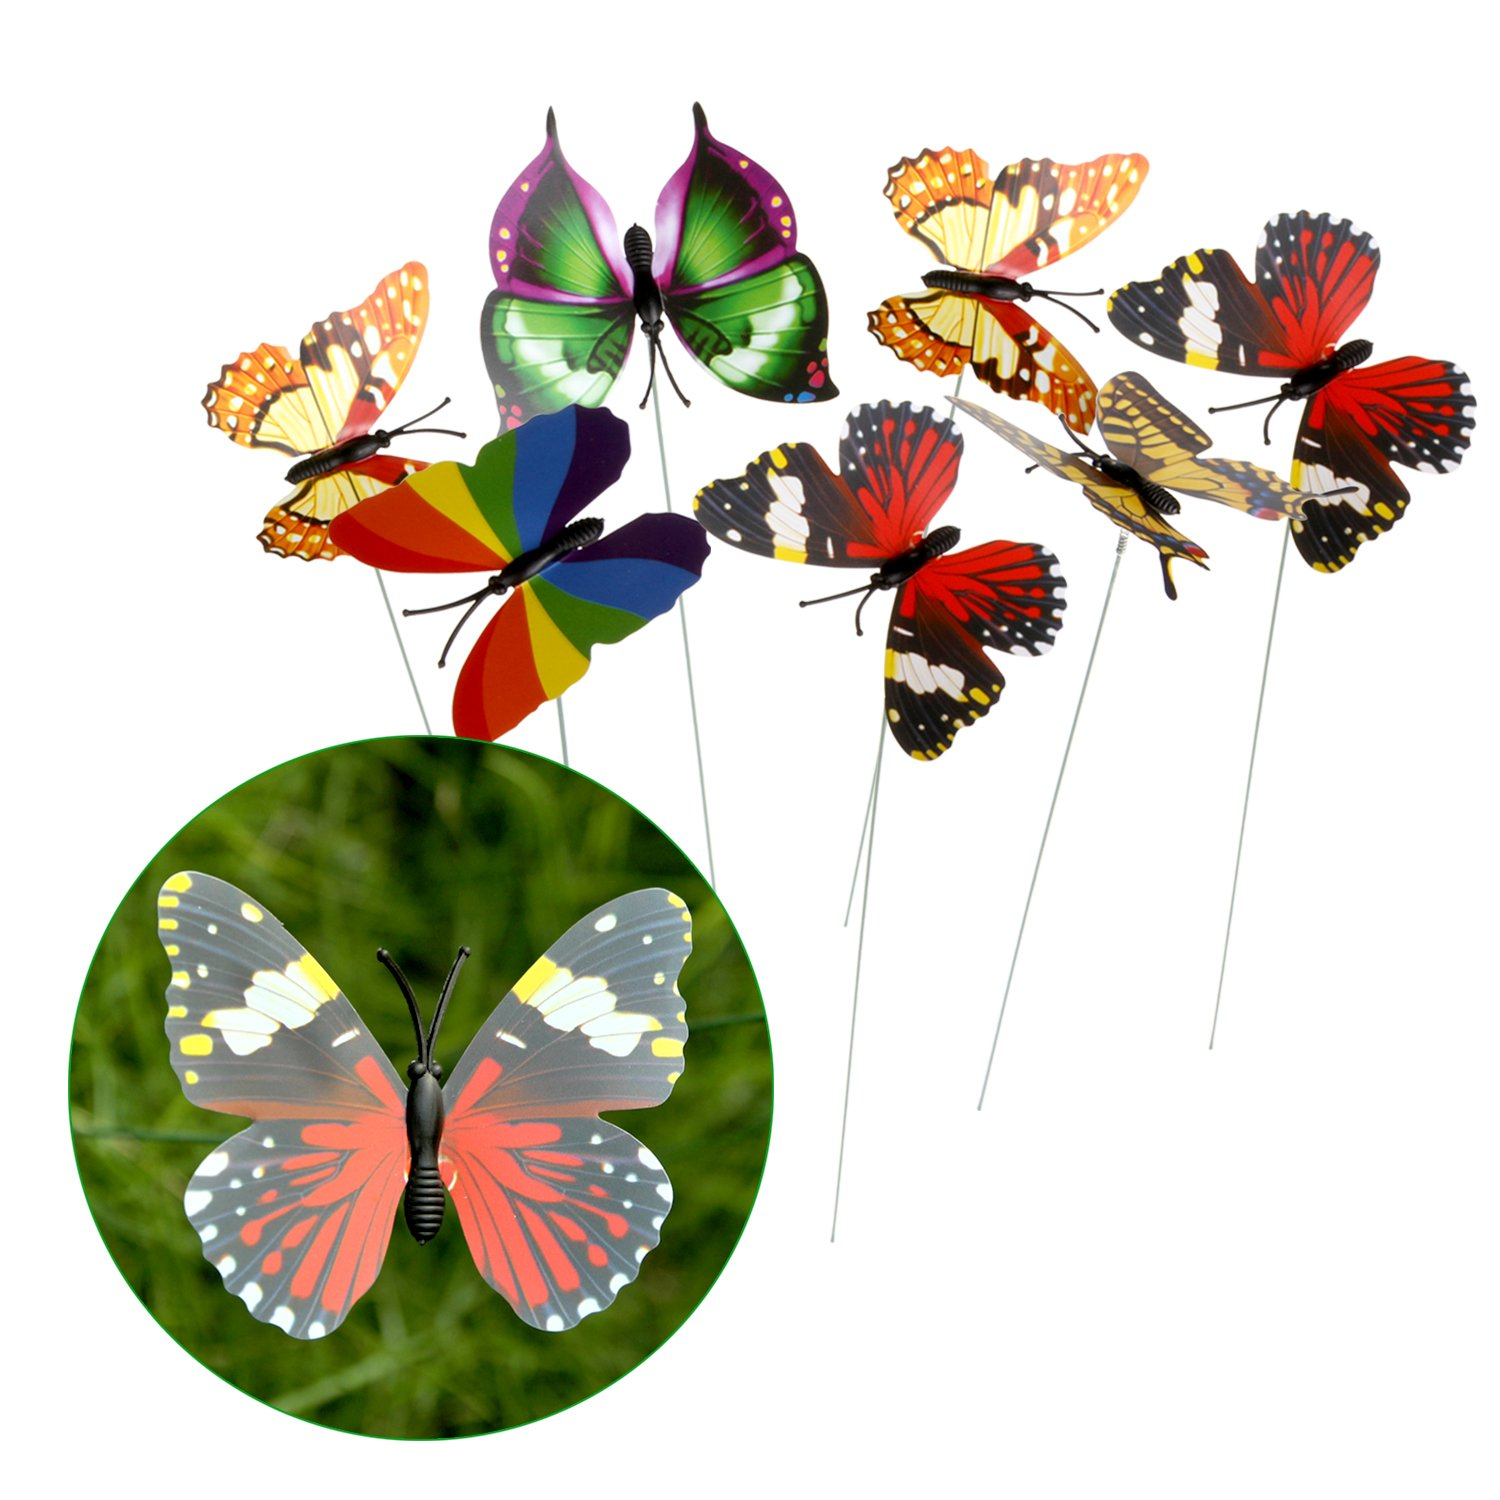 Atrium,Patio,Garden,Tree Branch Party Supplies Perfect Ornaments for Indoor Plants Christmas Decoration Bed Decor IMAGE 25pcs 0.4inch Butterfly Stake with 3D Colorful Wings